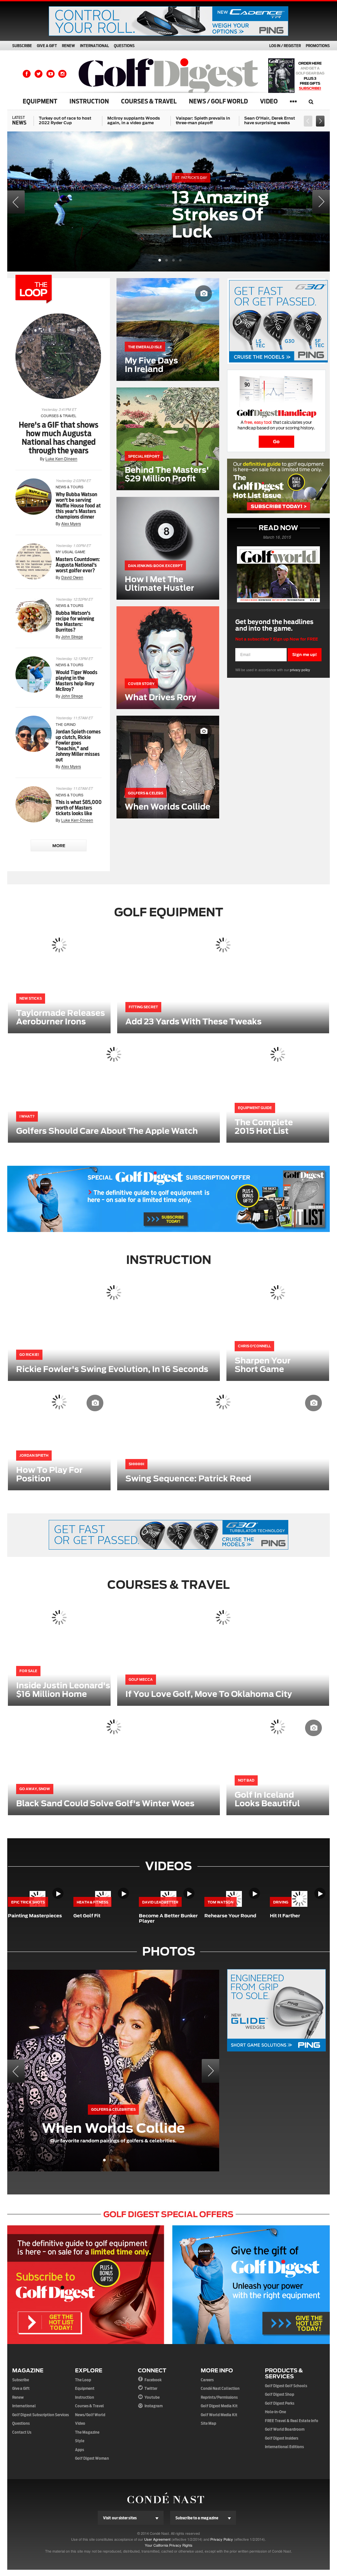 392be3644e02 Golf Digest Competitors, Revenue and Employees - Owler Company Profile